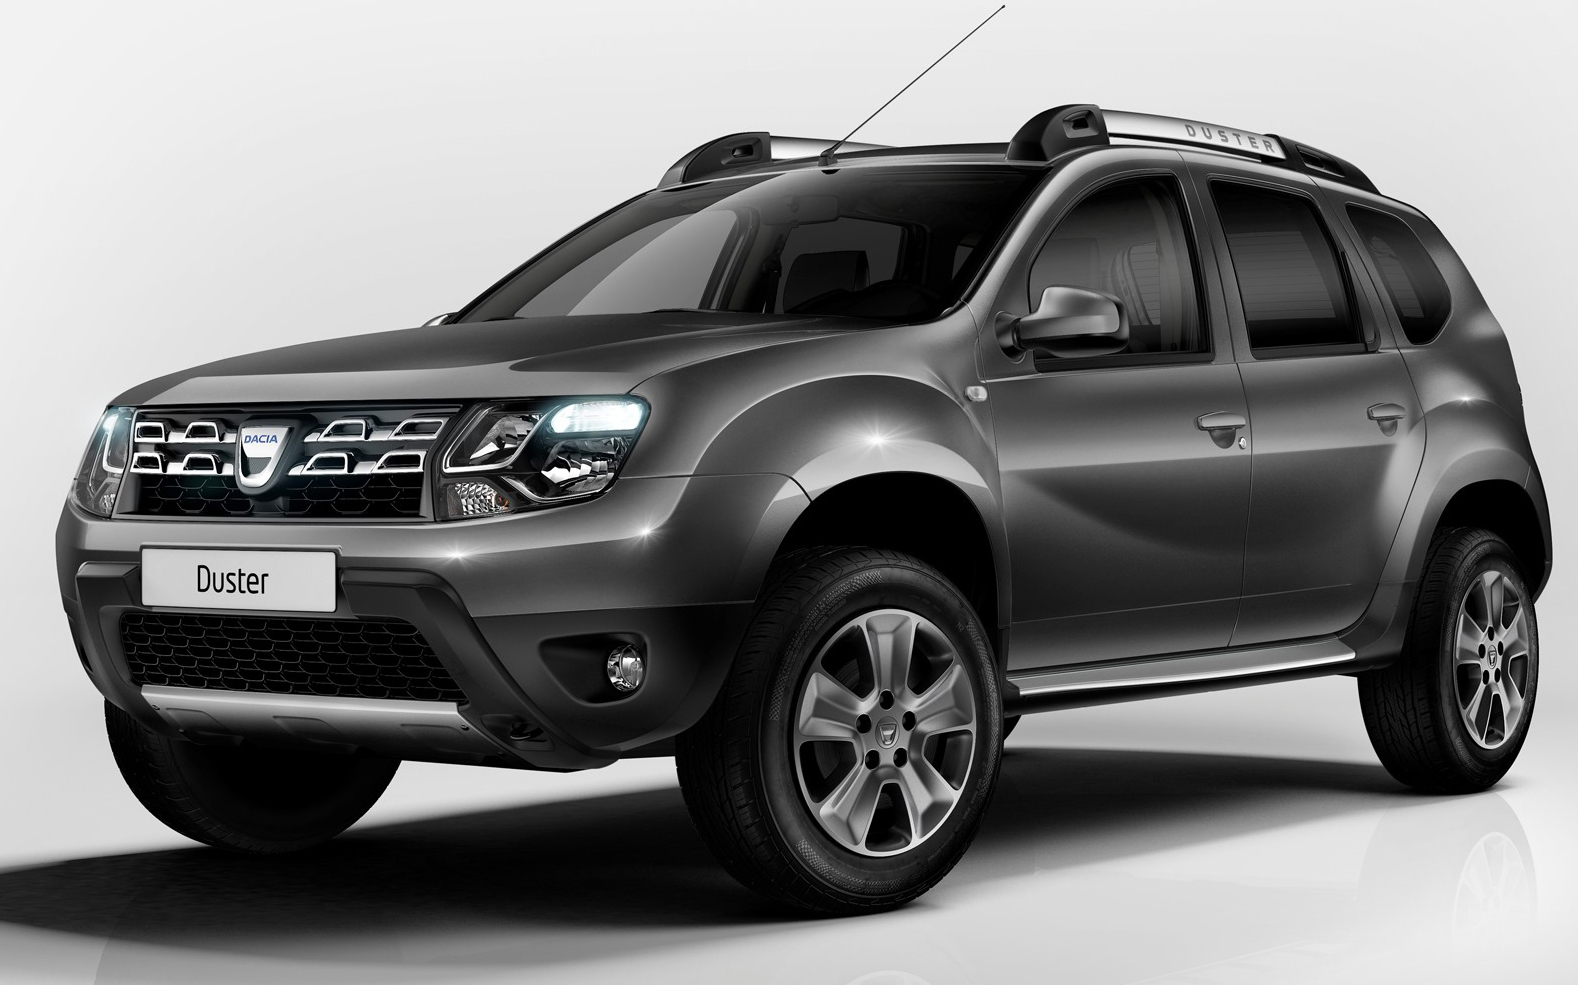 2014 Dacia Duster SUV 1 Dacia Duster SUV 2014 receives mild restyling